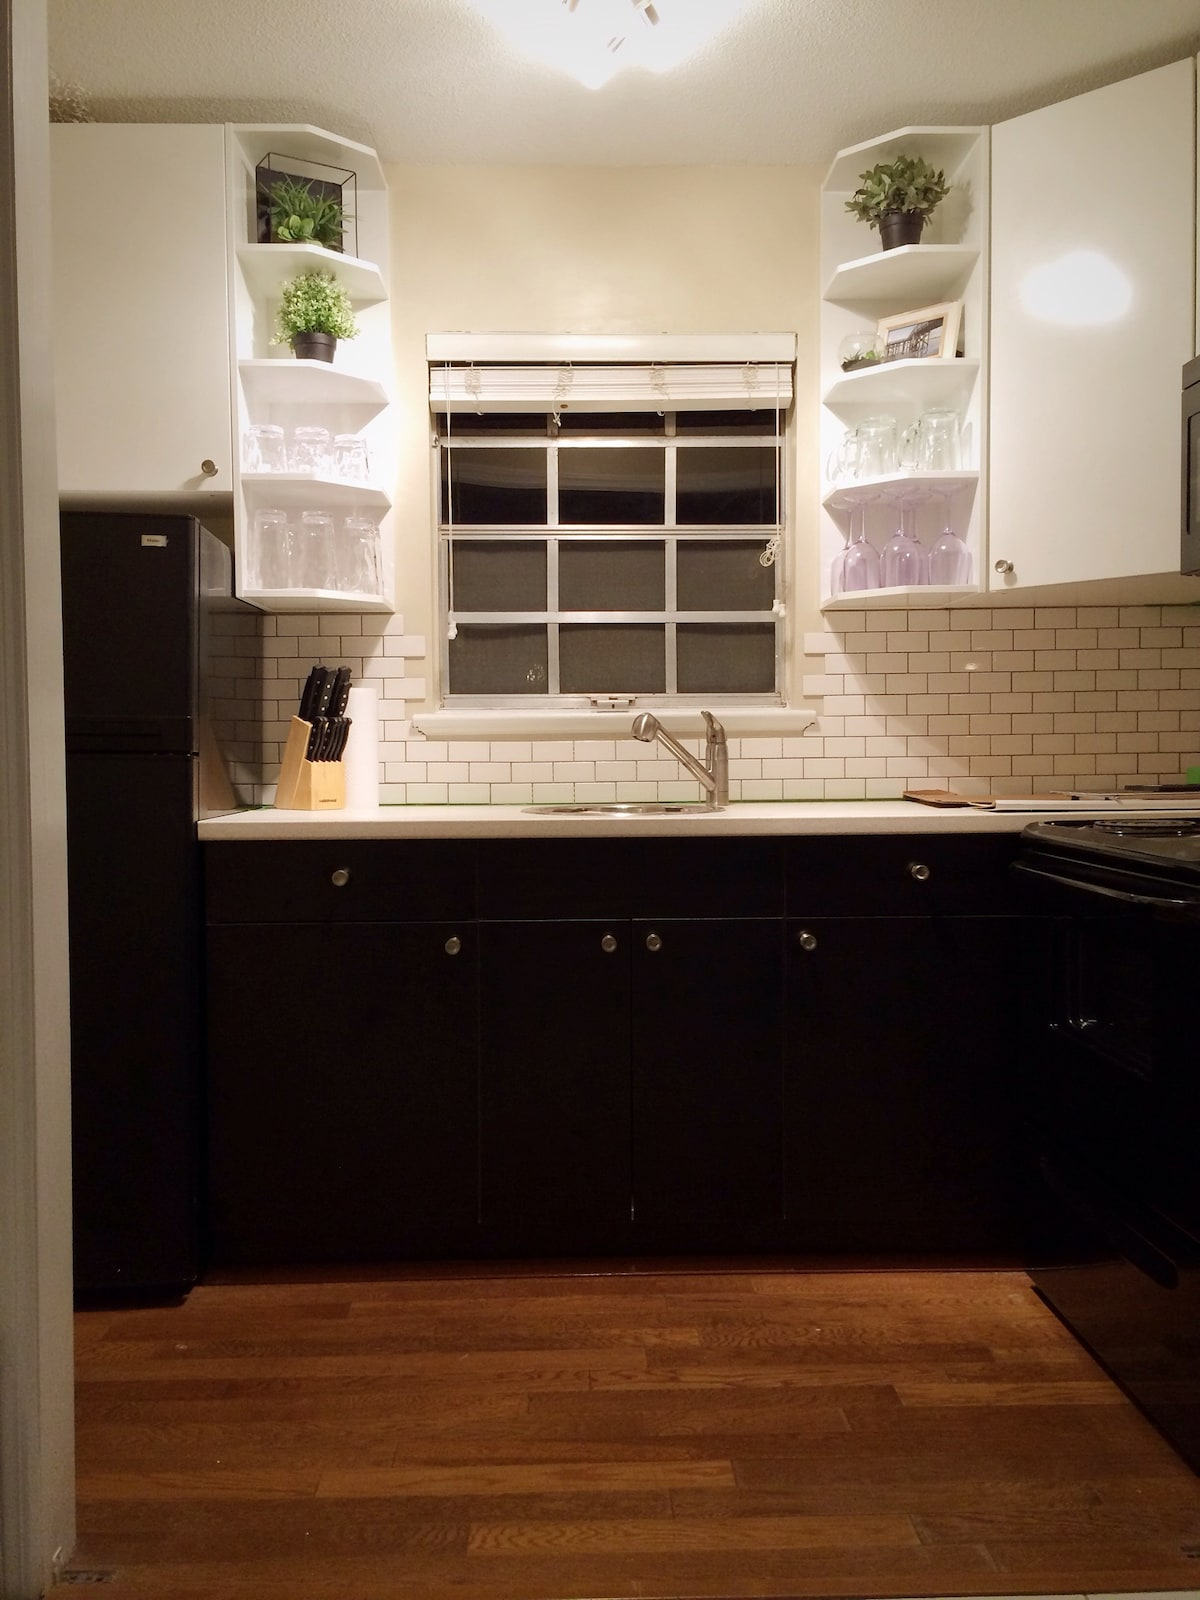 All new, fully stocked, kitchen with refrigerator, microwave, stove, Keurig and a wine opener. All you need is food...and wine!